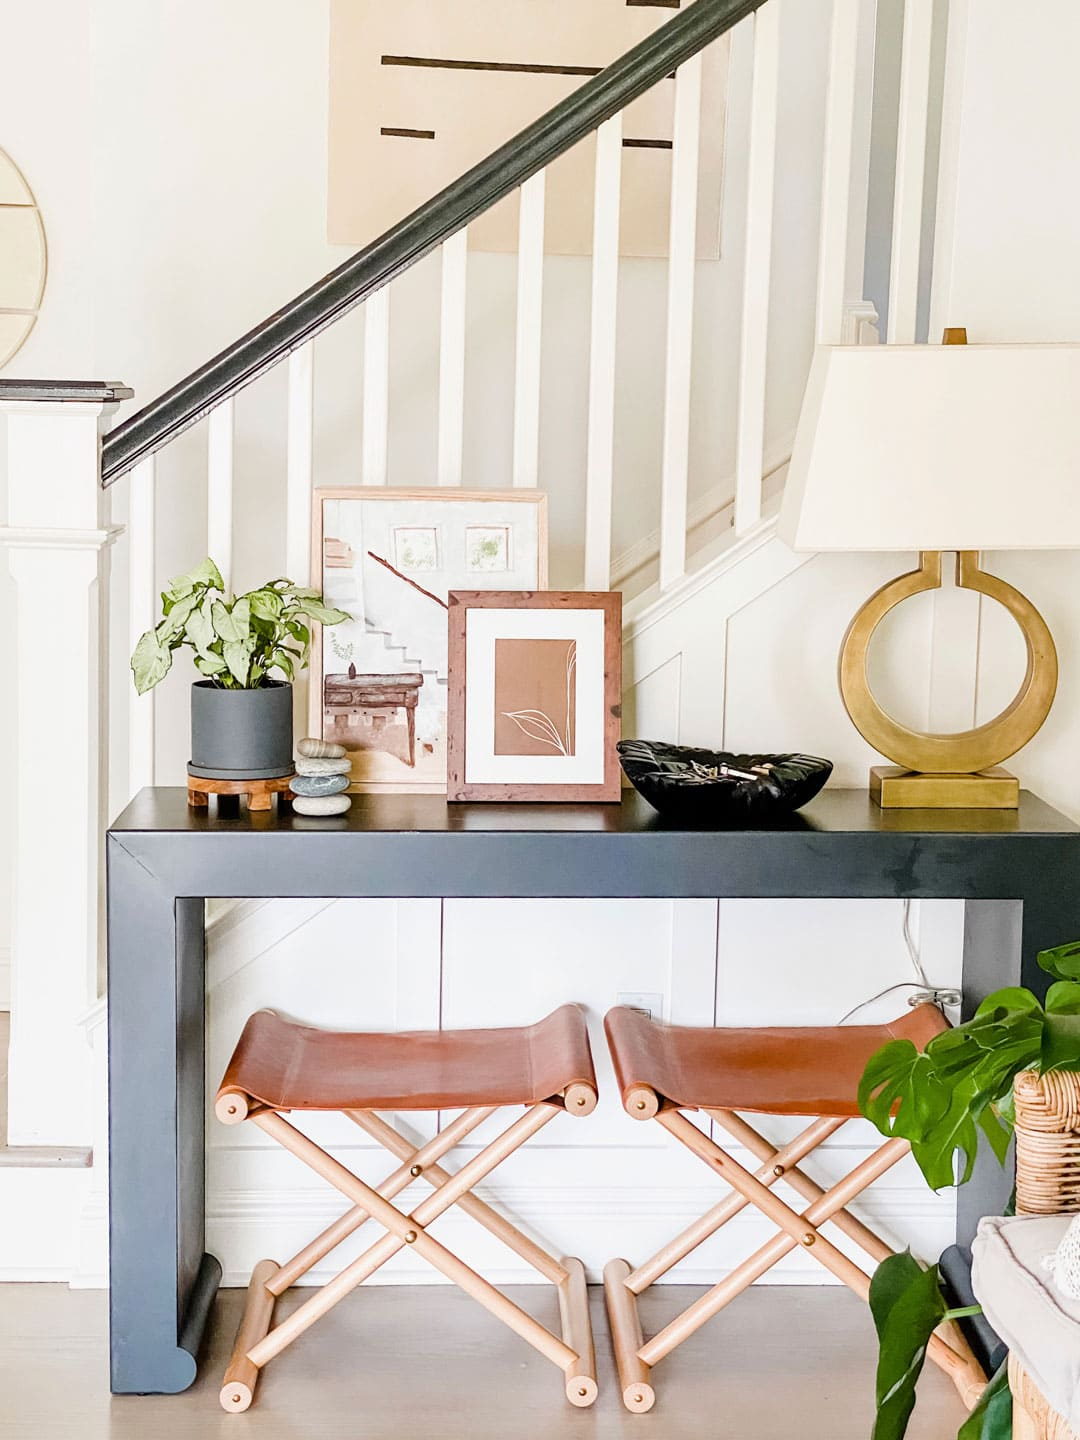 Lifestyle blogger Annie Diamond shares her ideas on how a simple console table